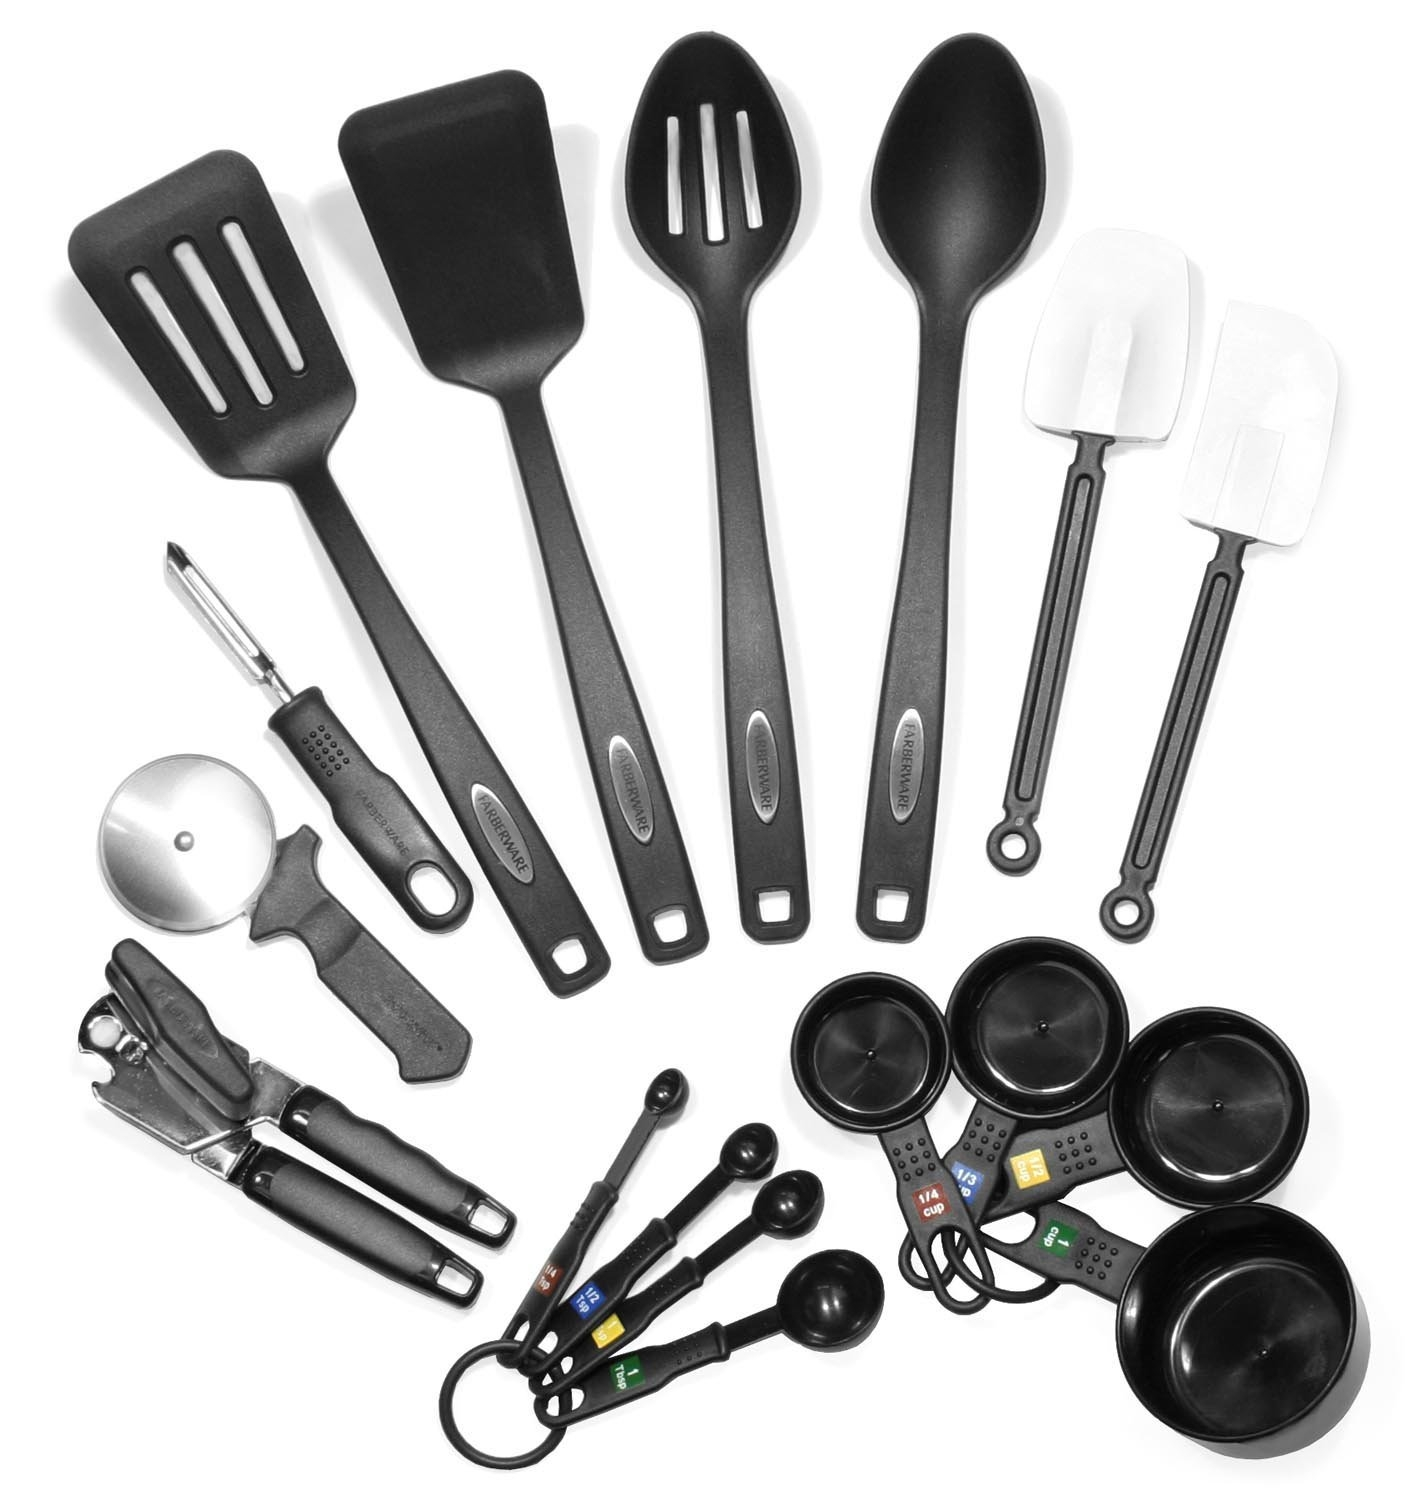 Permalink to Complete Set Of Kitchen Utensils